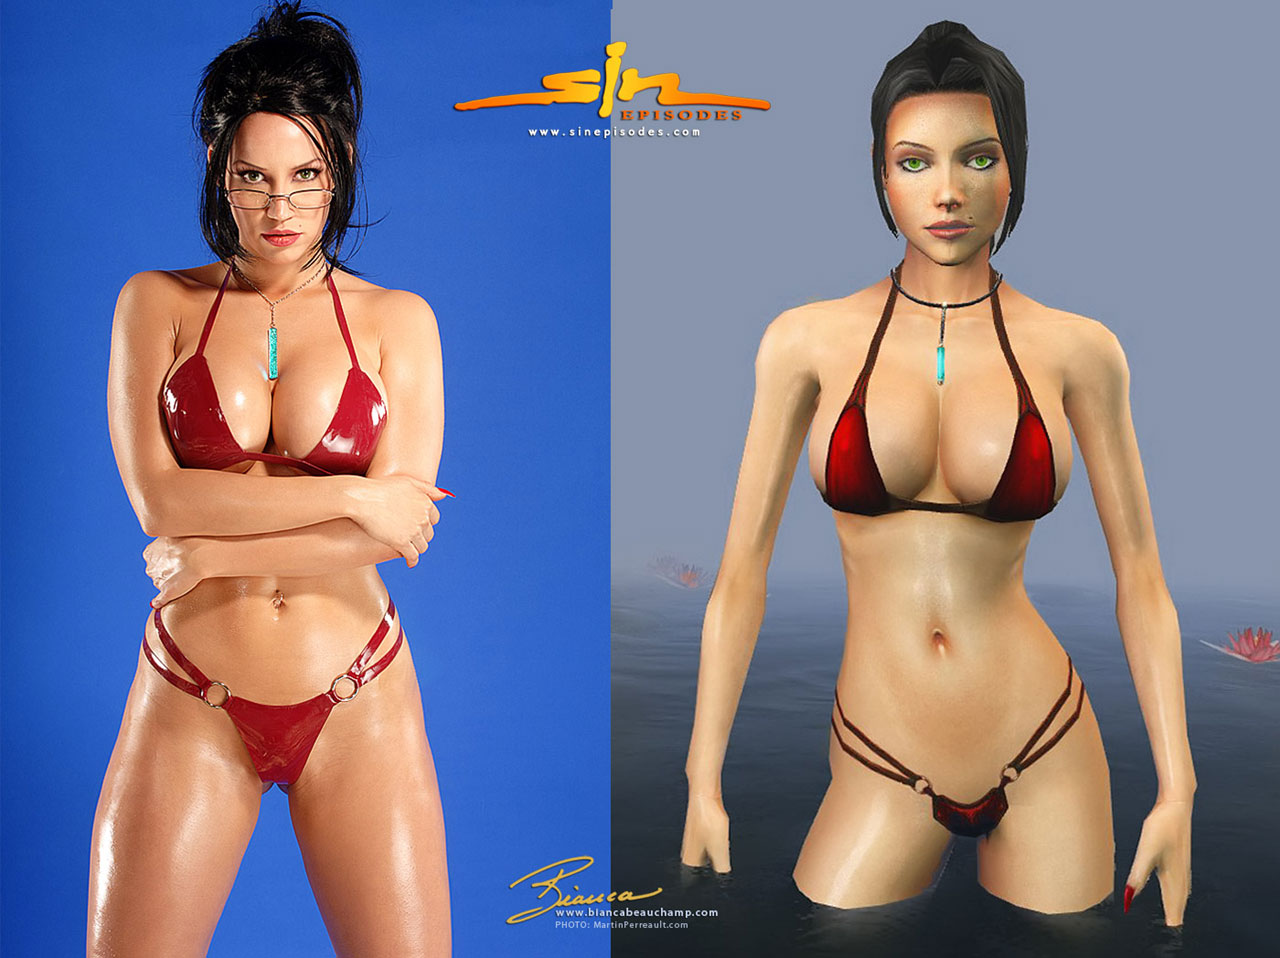 Sims 2 elexis sinclaire adult thumbs